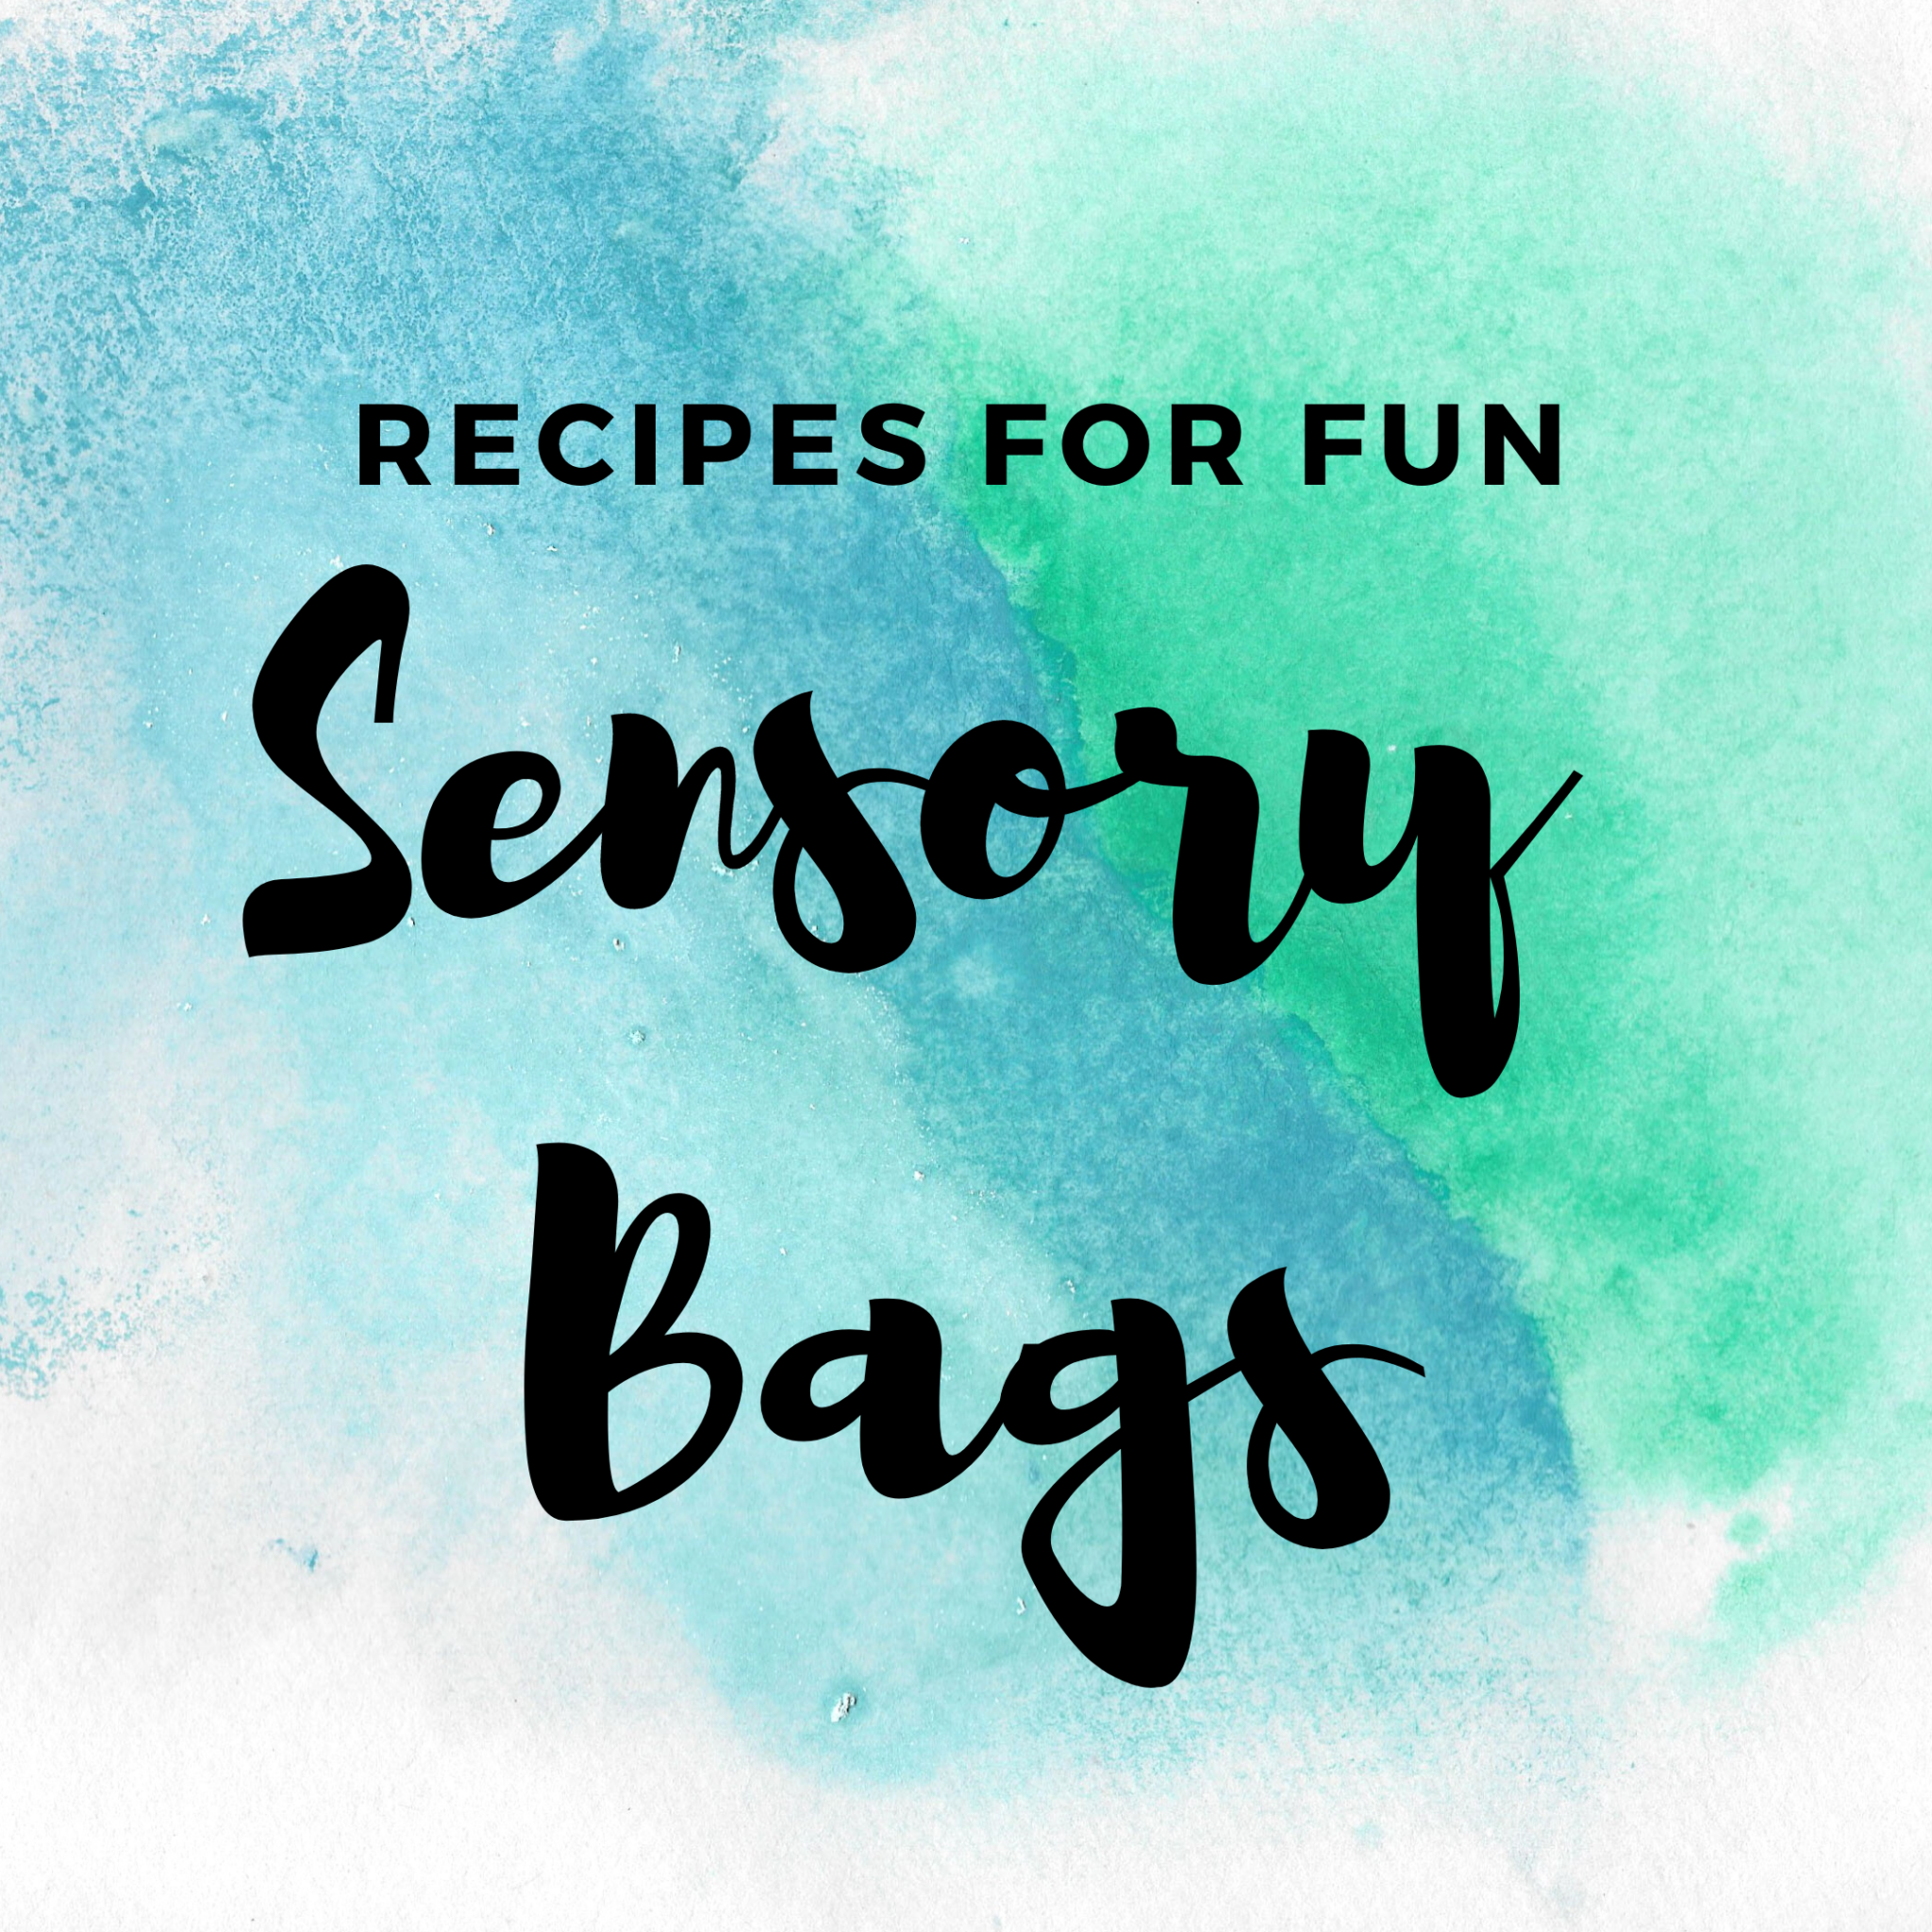 Text Recipes for Fun Sensory Bags on a blue and green watercolor background